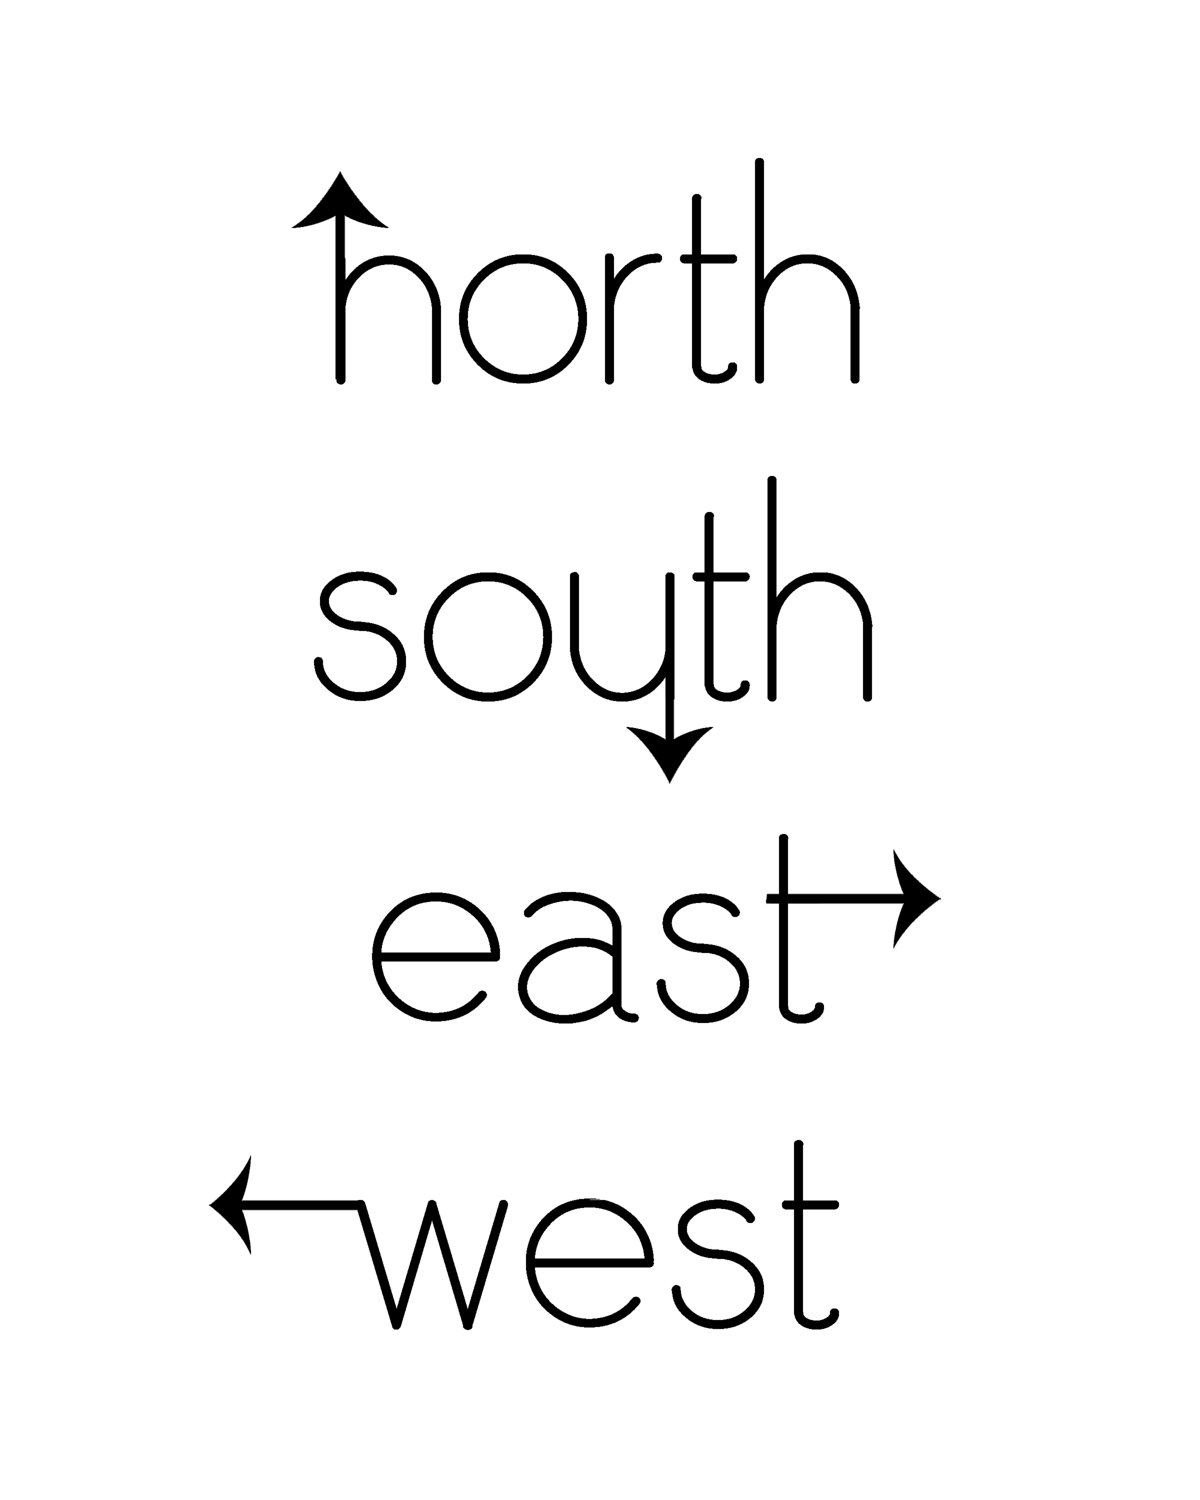 East clipart north south east west  arrows directions map south